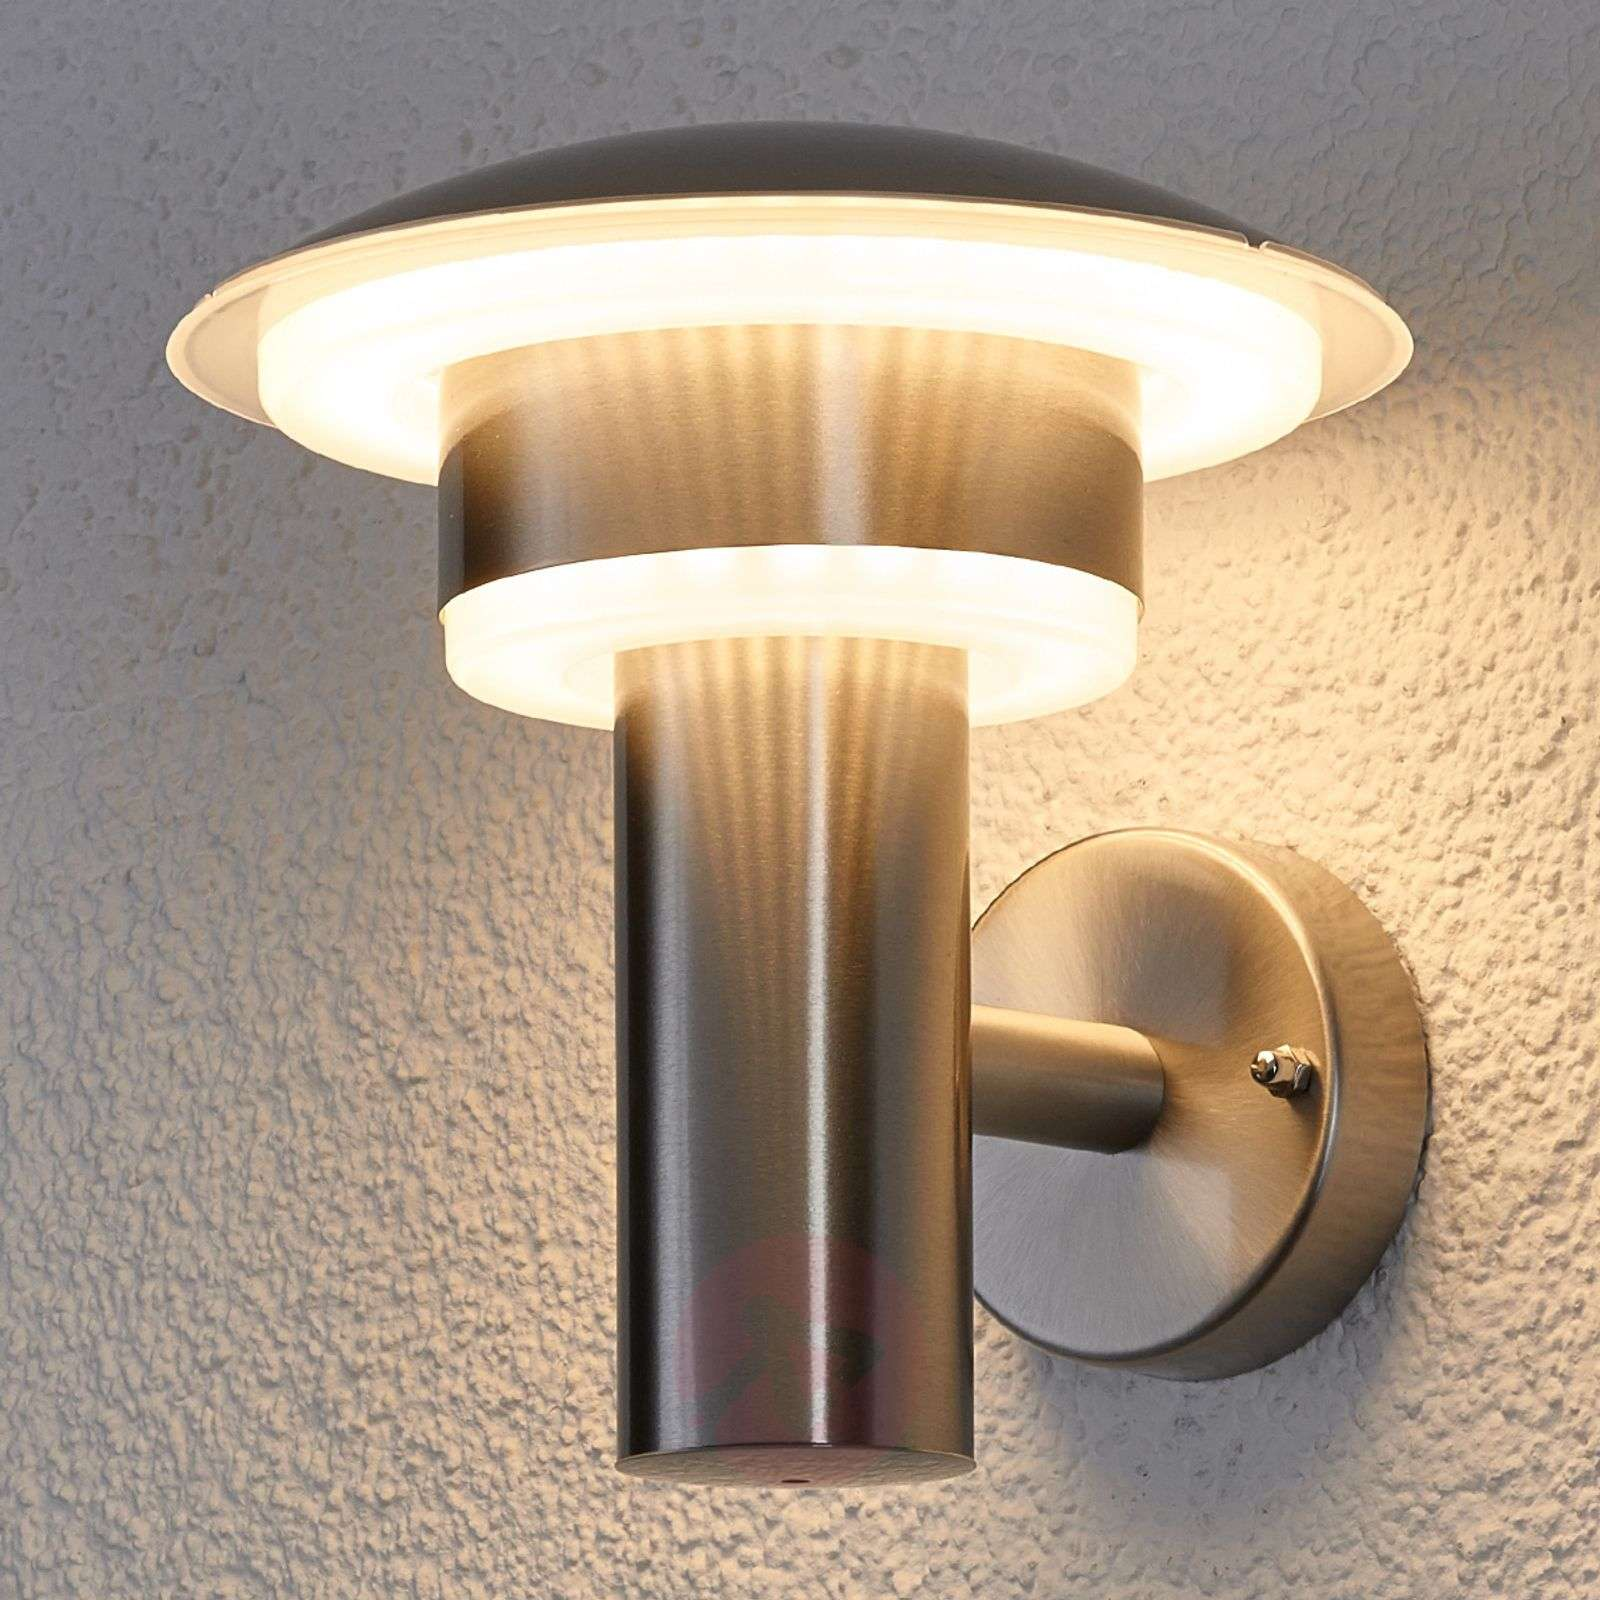 Led stainless steel outdoor wall light lillie for Lampe exterieur led design